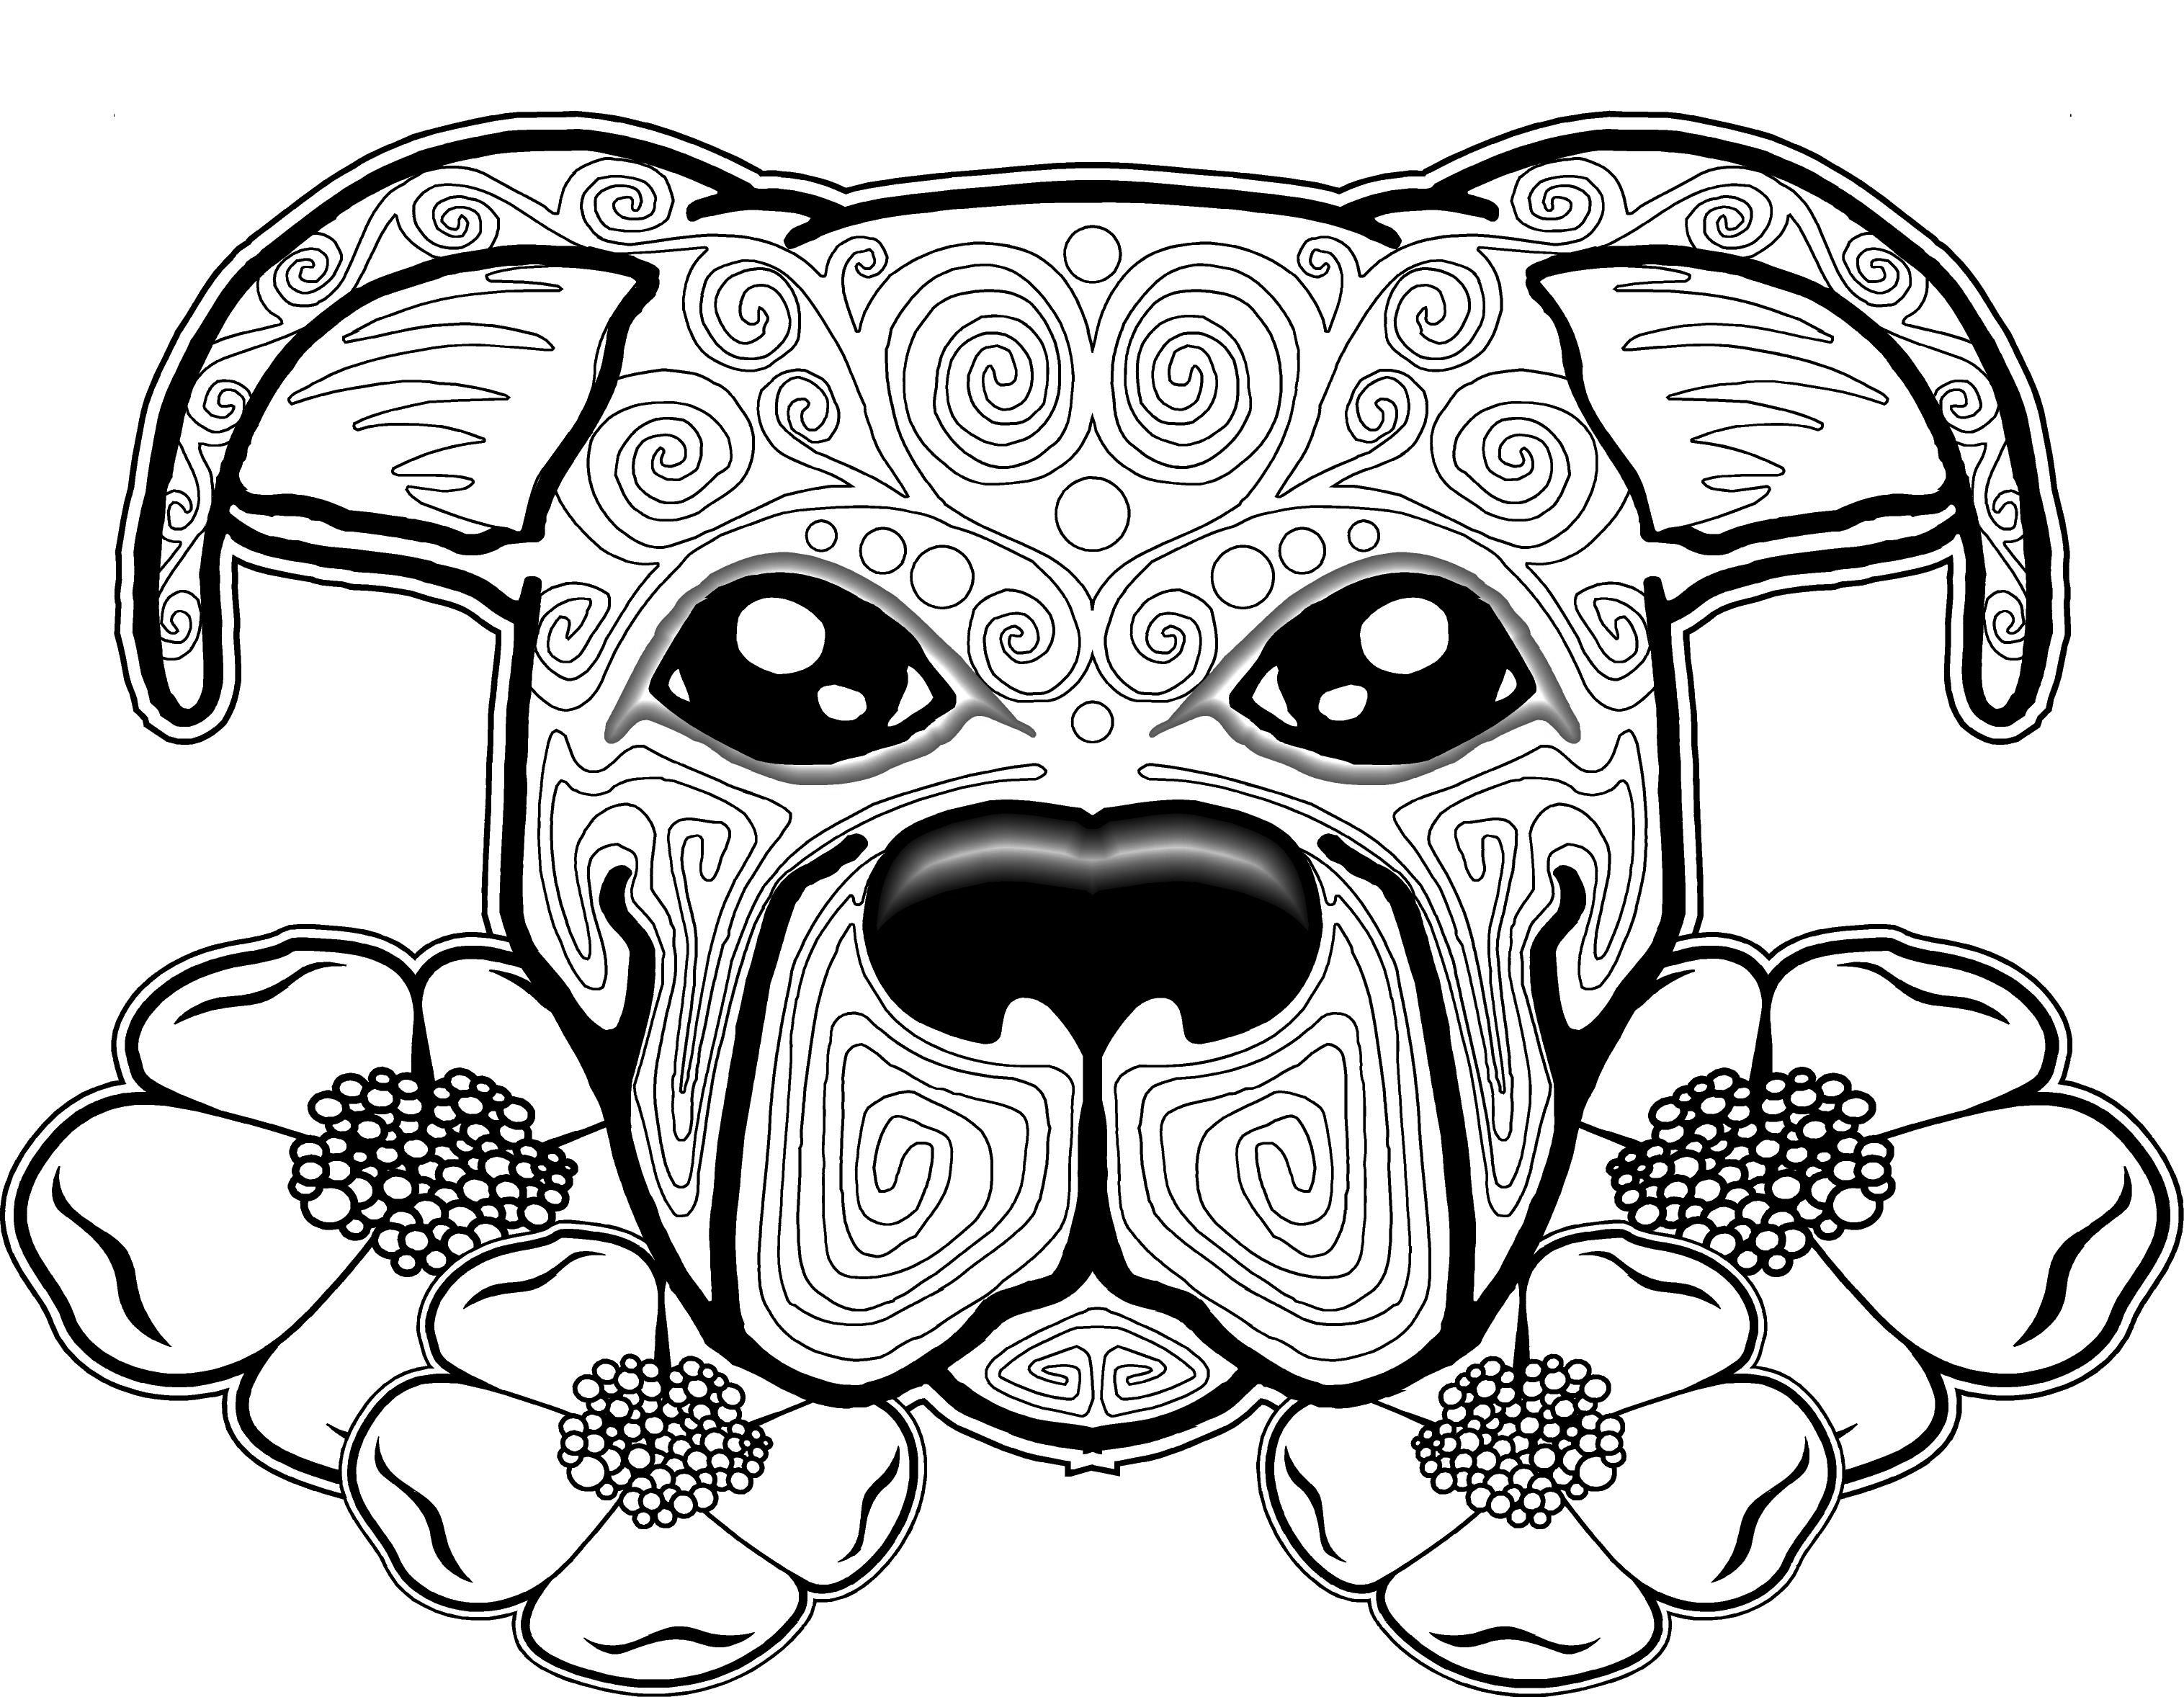 dog coloring page,, free coloring page, free coloring pages for ...